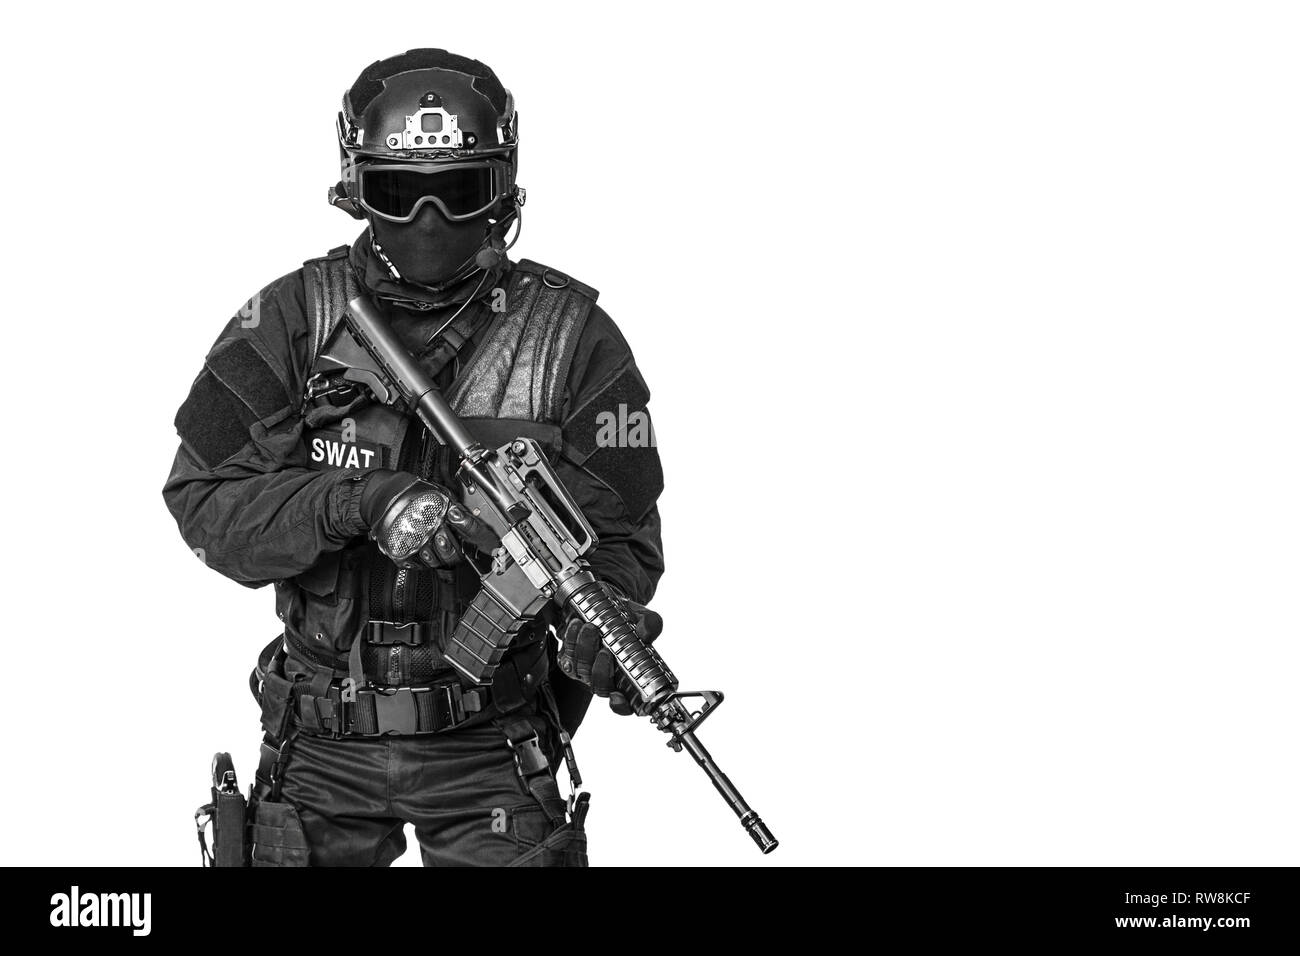 Spec ops police officer SWAT in black uniform and face mask, studio